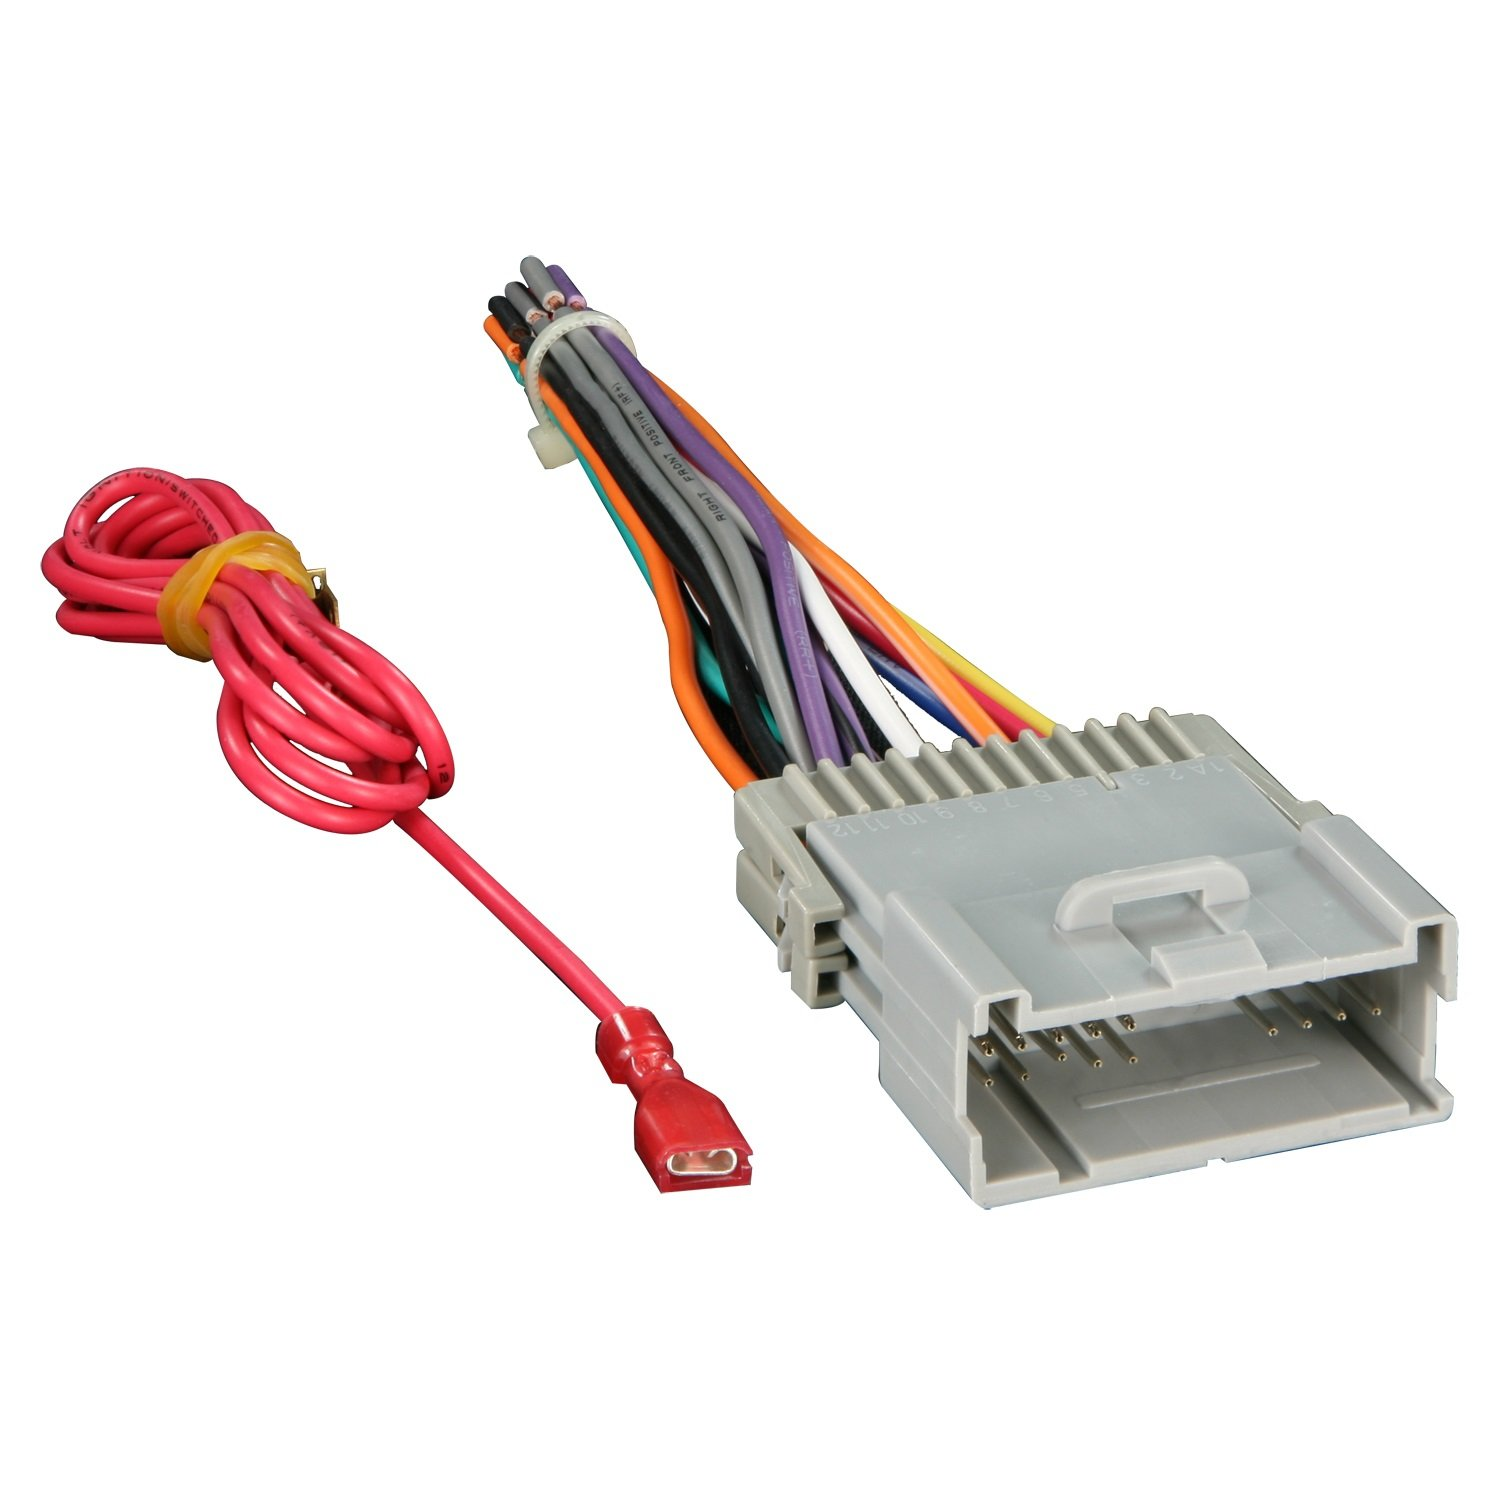 61eewxp9orL._SL1500_ amazon com metra 70 2003 radio wiring harness for gm 98 08 how to install wire harness car stereo at gsmportal.co